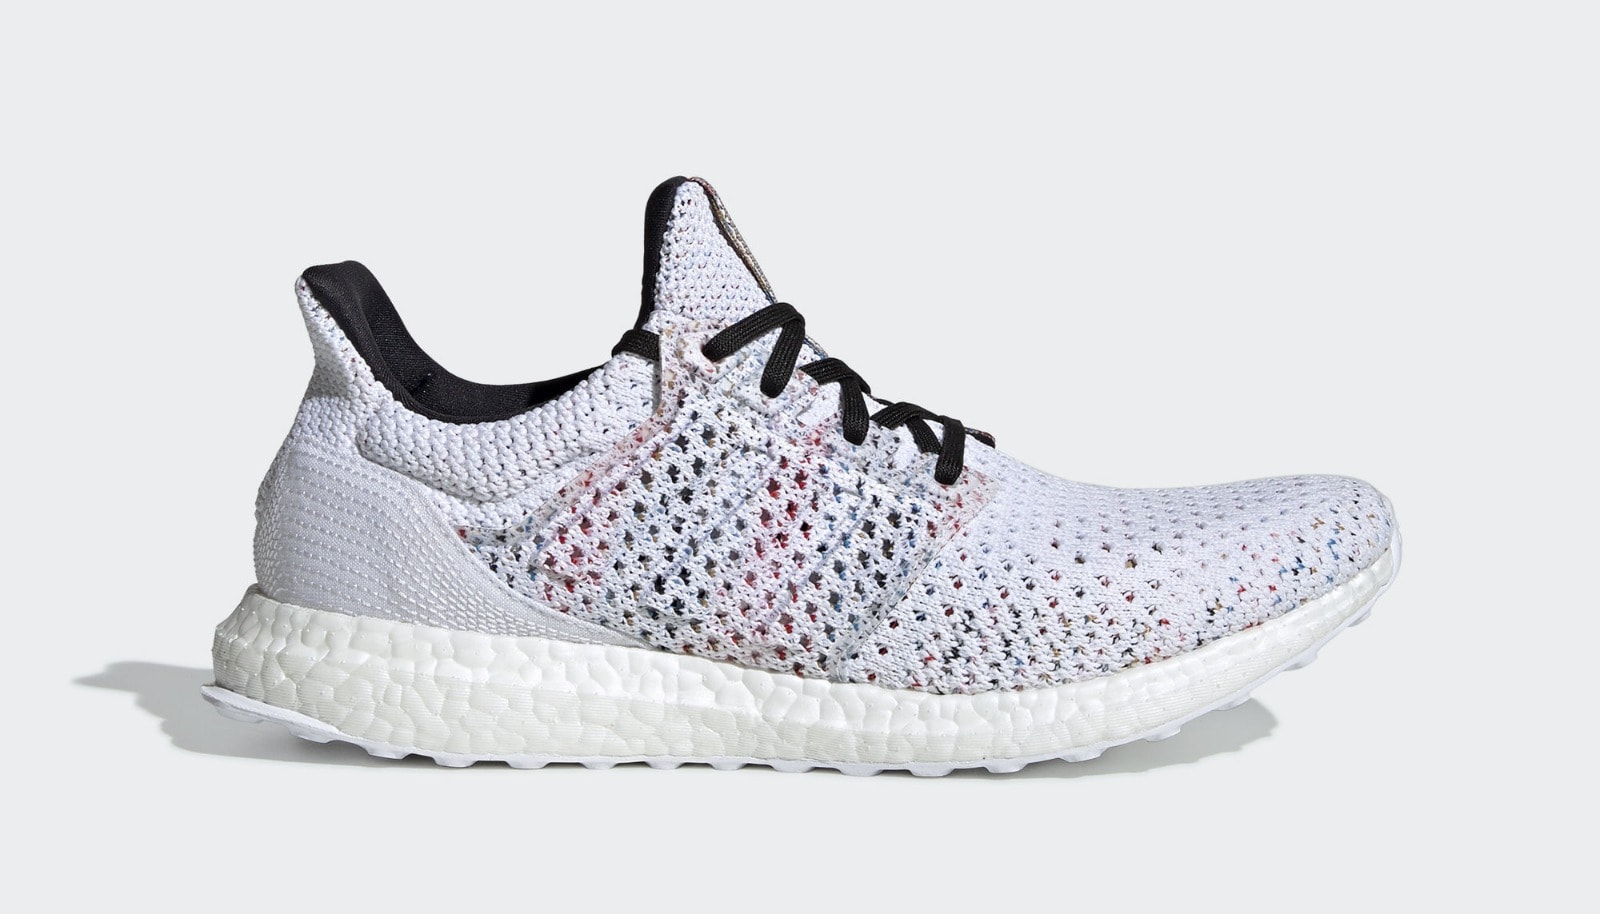 best service e573a 761b2 Missoni x adidas Ultra Boost Clima Ftwr White Ftwr White Multicolor April  25, 2019